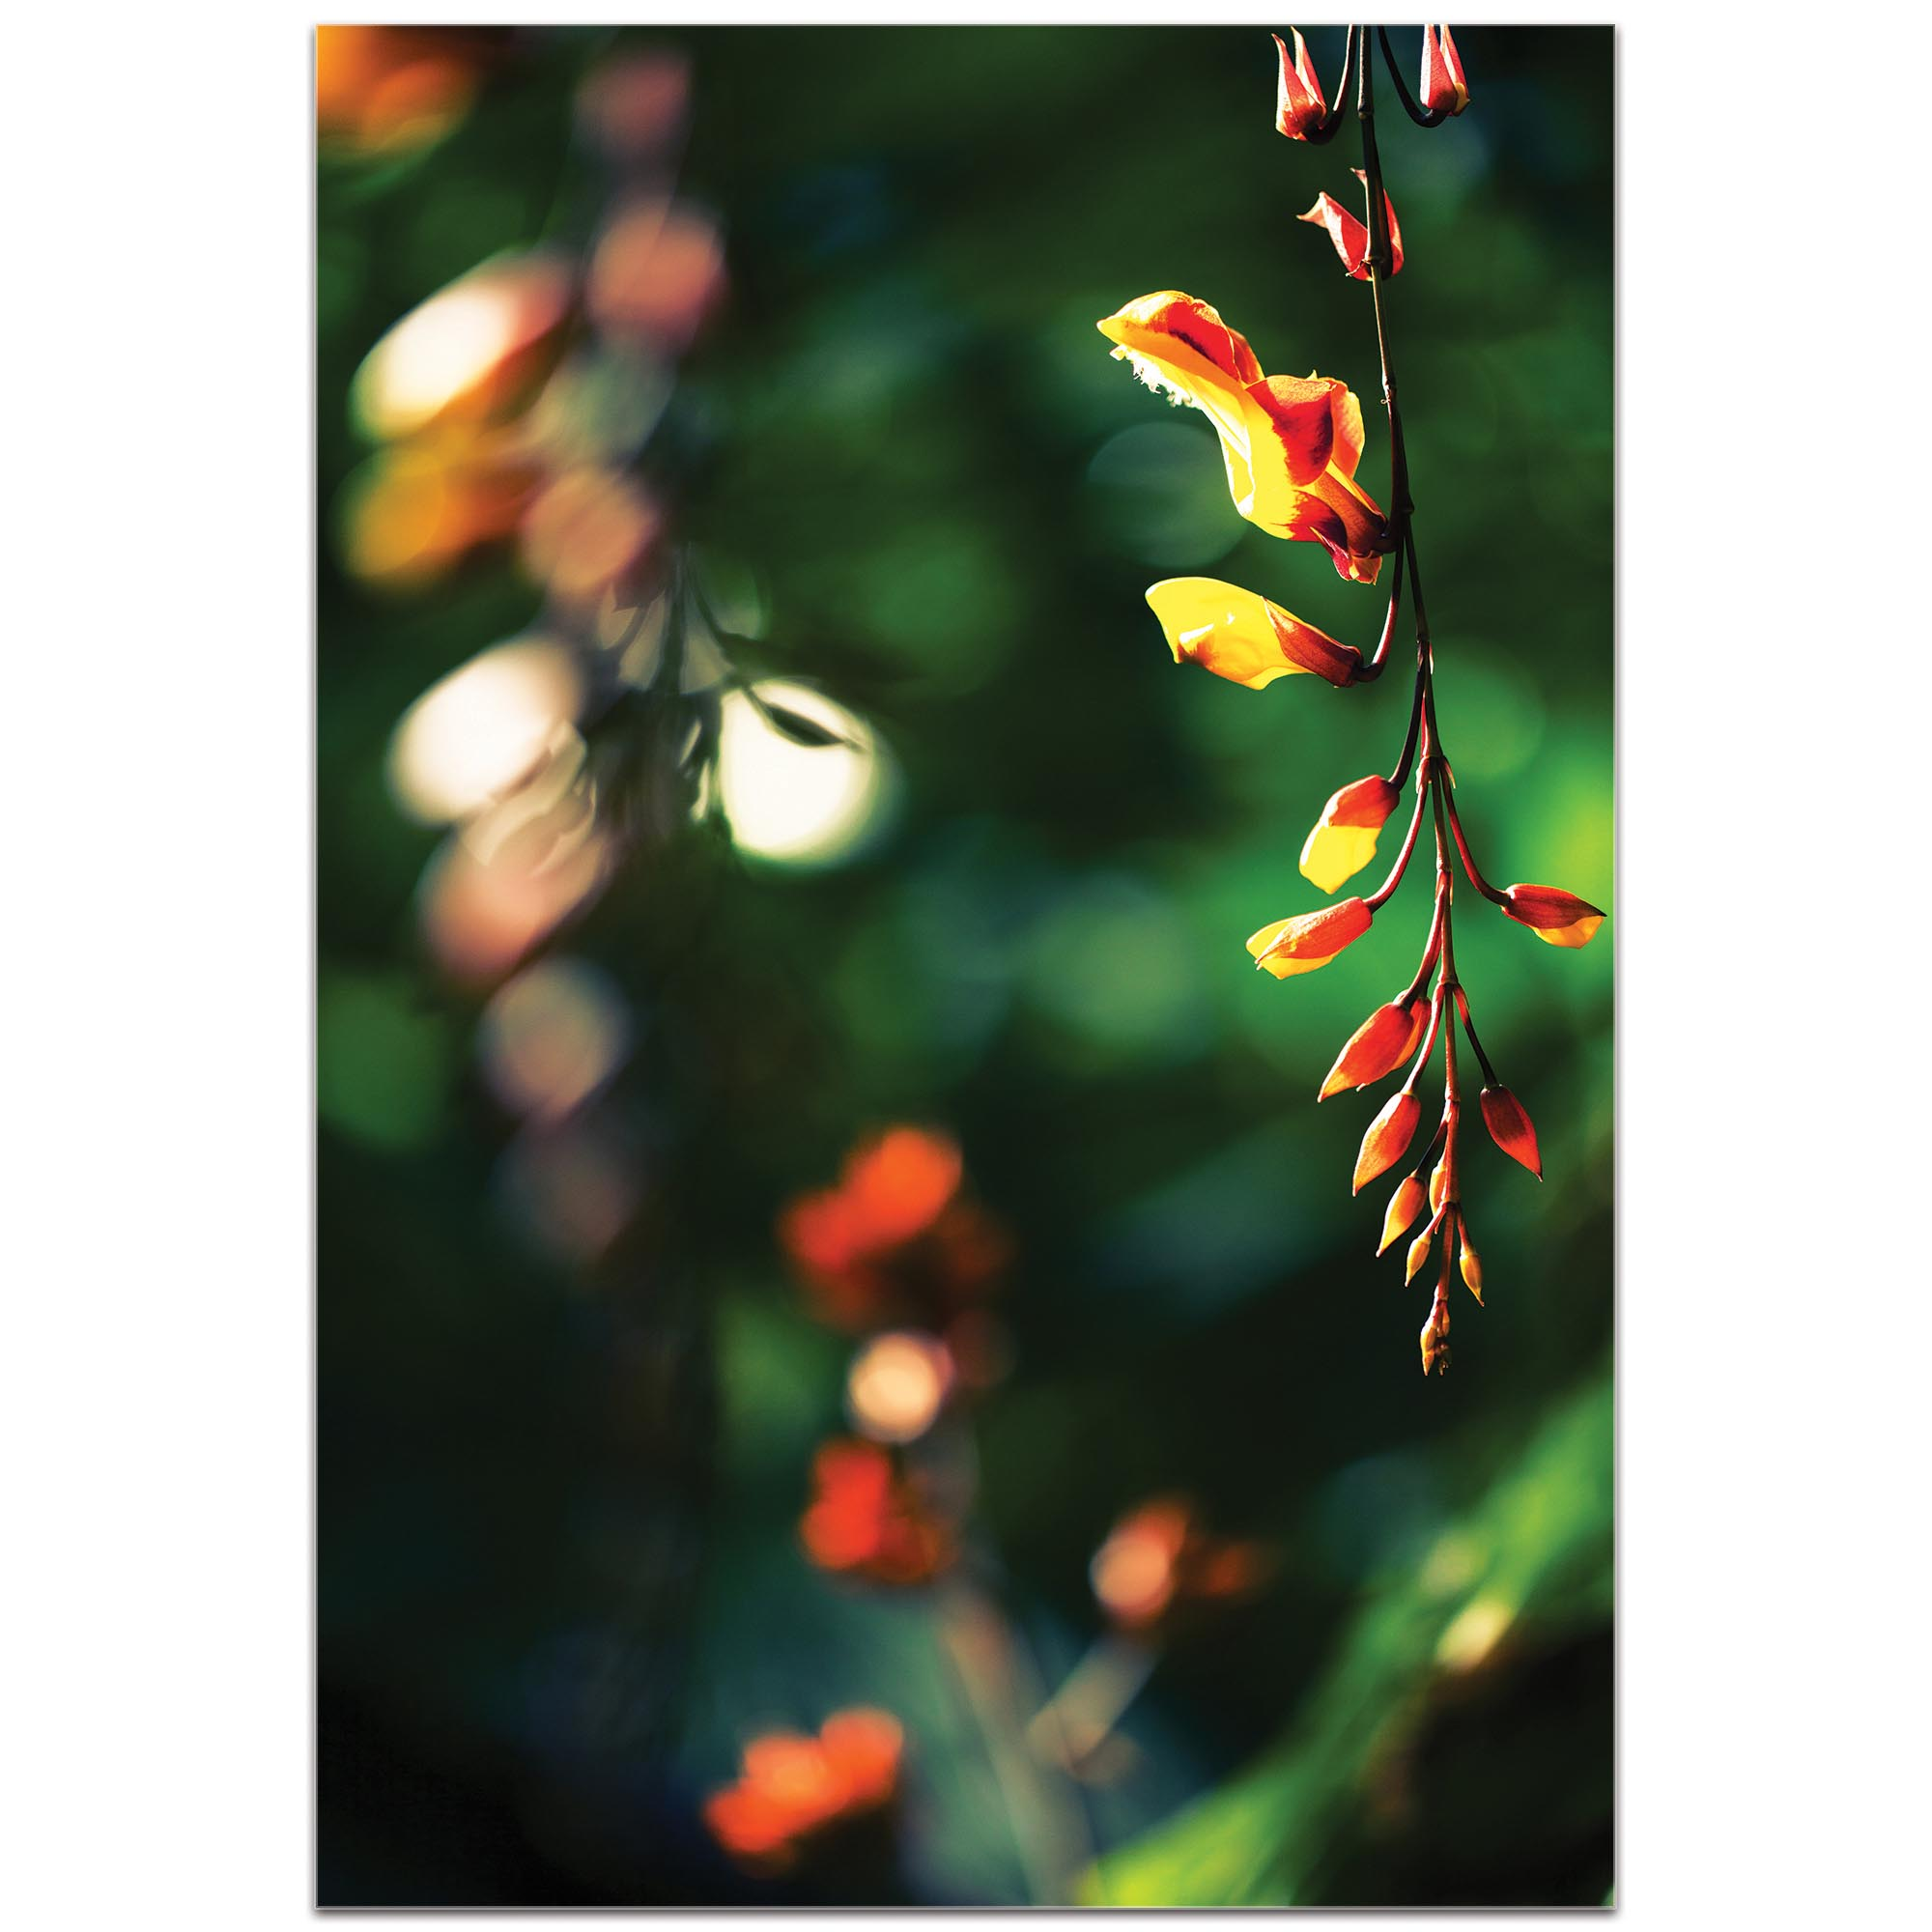 Nature Photography 'Hanging Flowers' - Flower Blossom Art on Metal or Plexiglass - Image 2